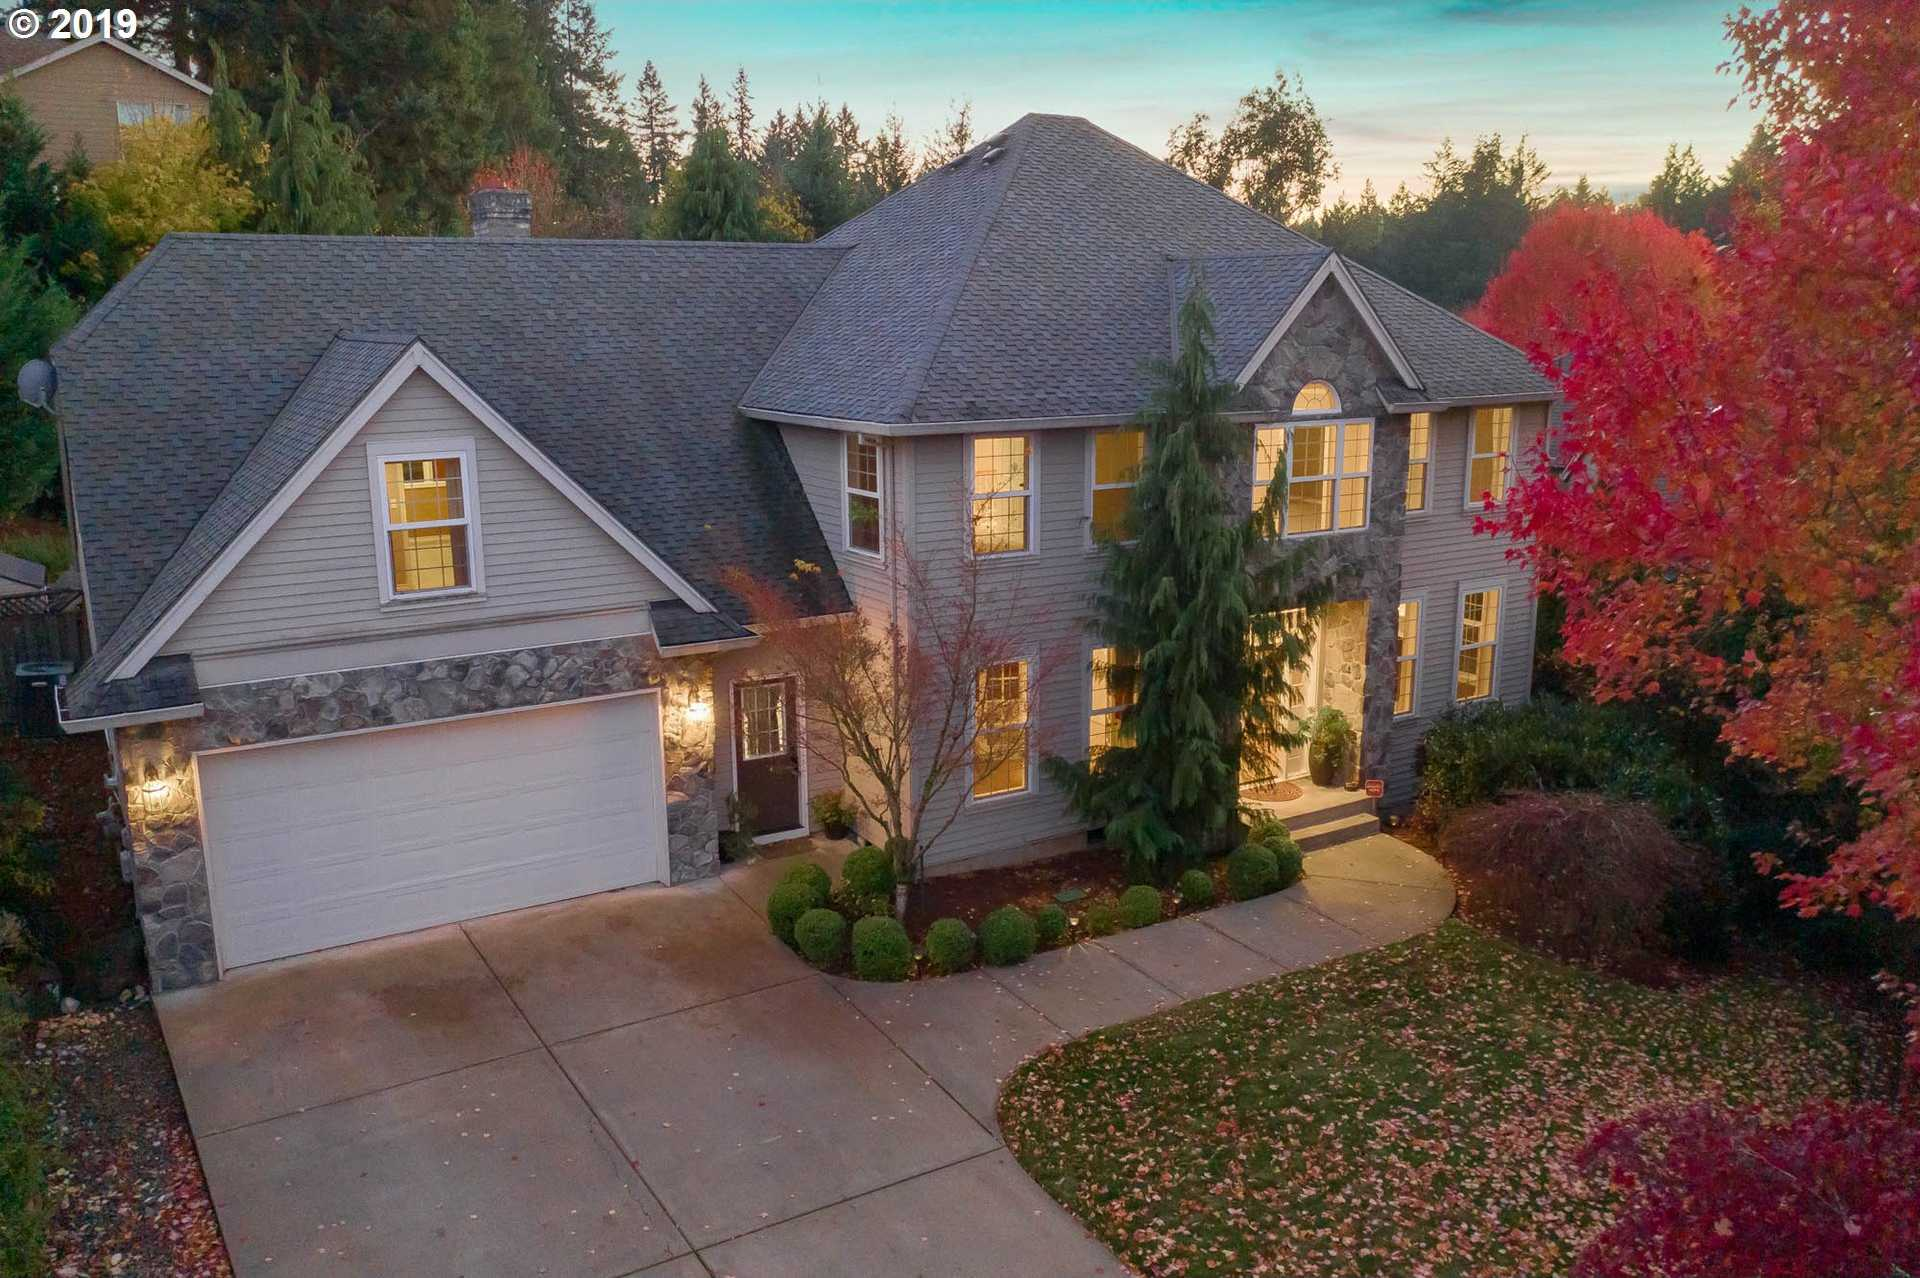 $689,900 - 4Br/3Ba -  for Sale in Tualatin